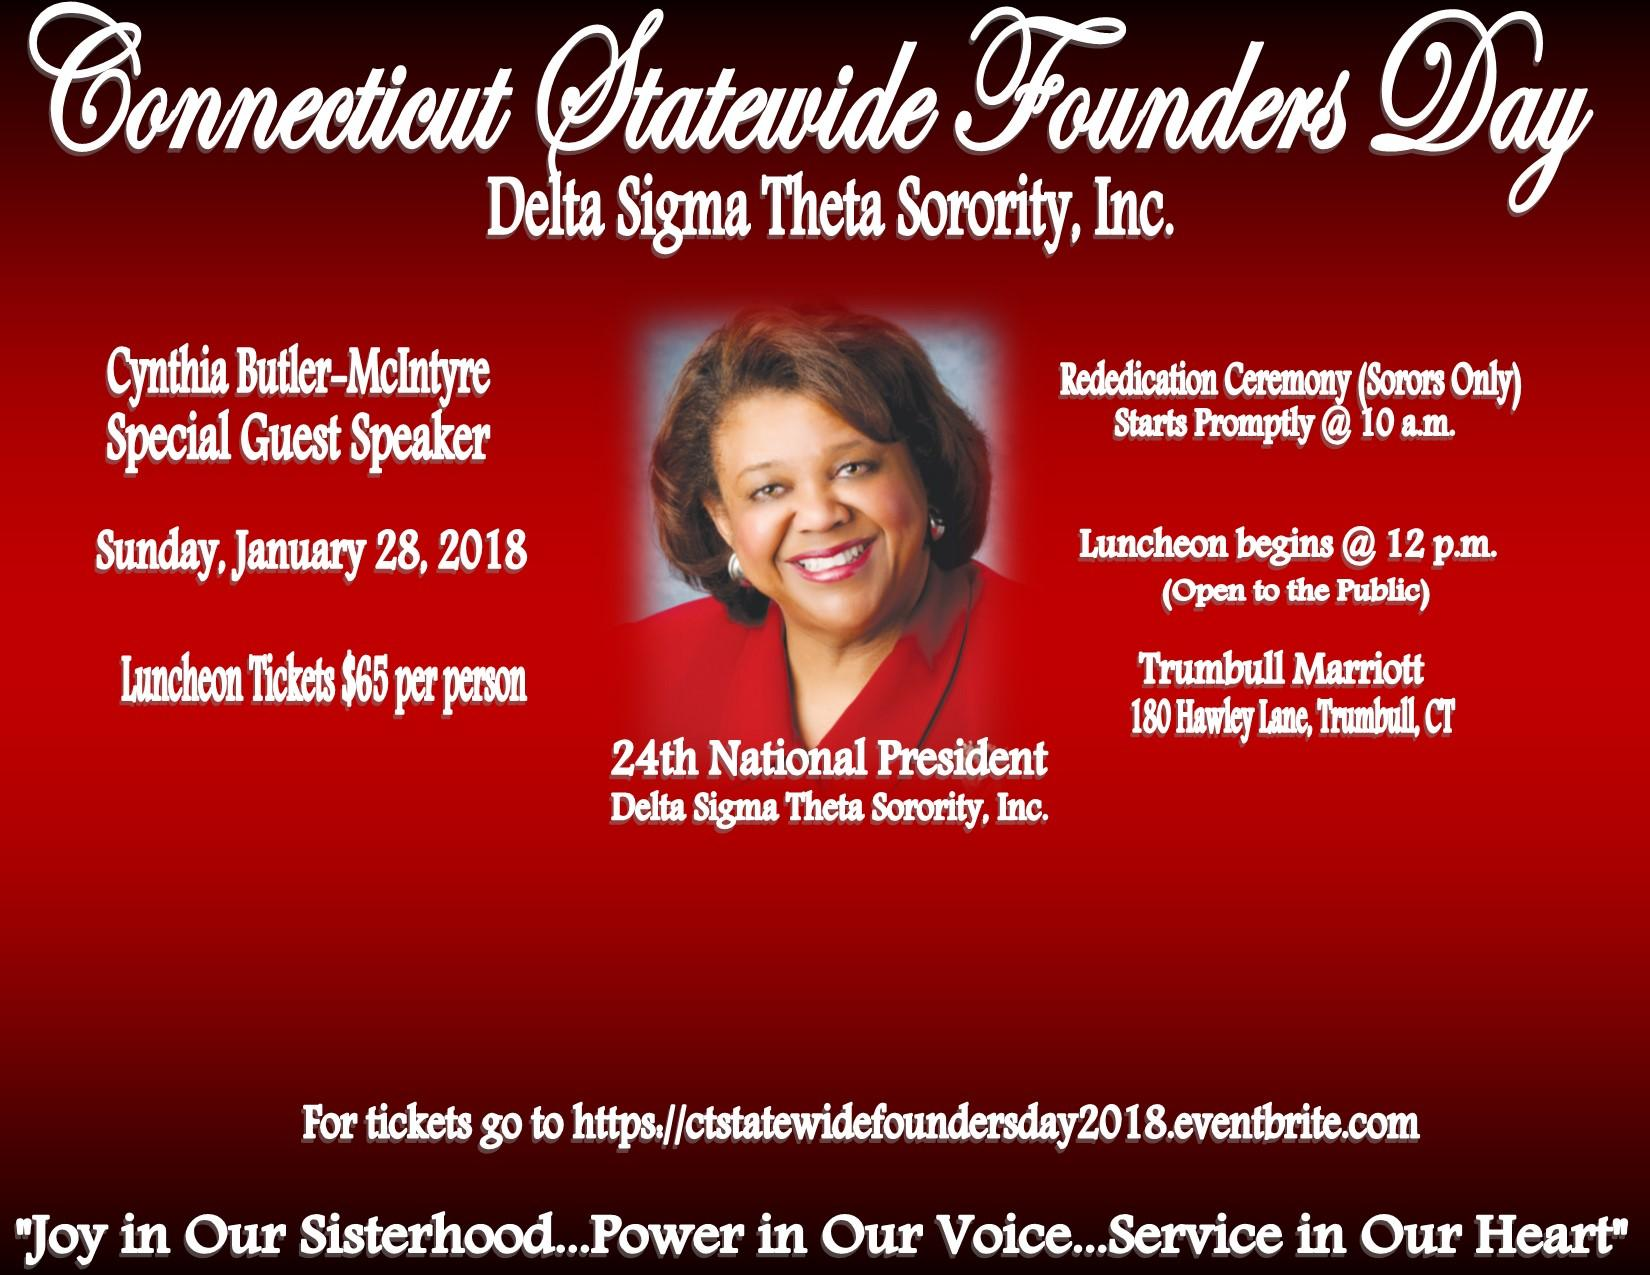 Connecticut Statewide Founders Day Delta Sigma Theta Sorority